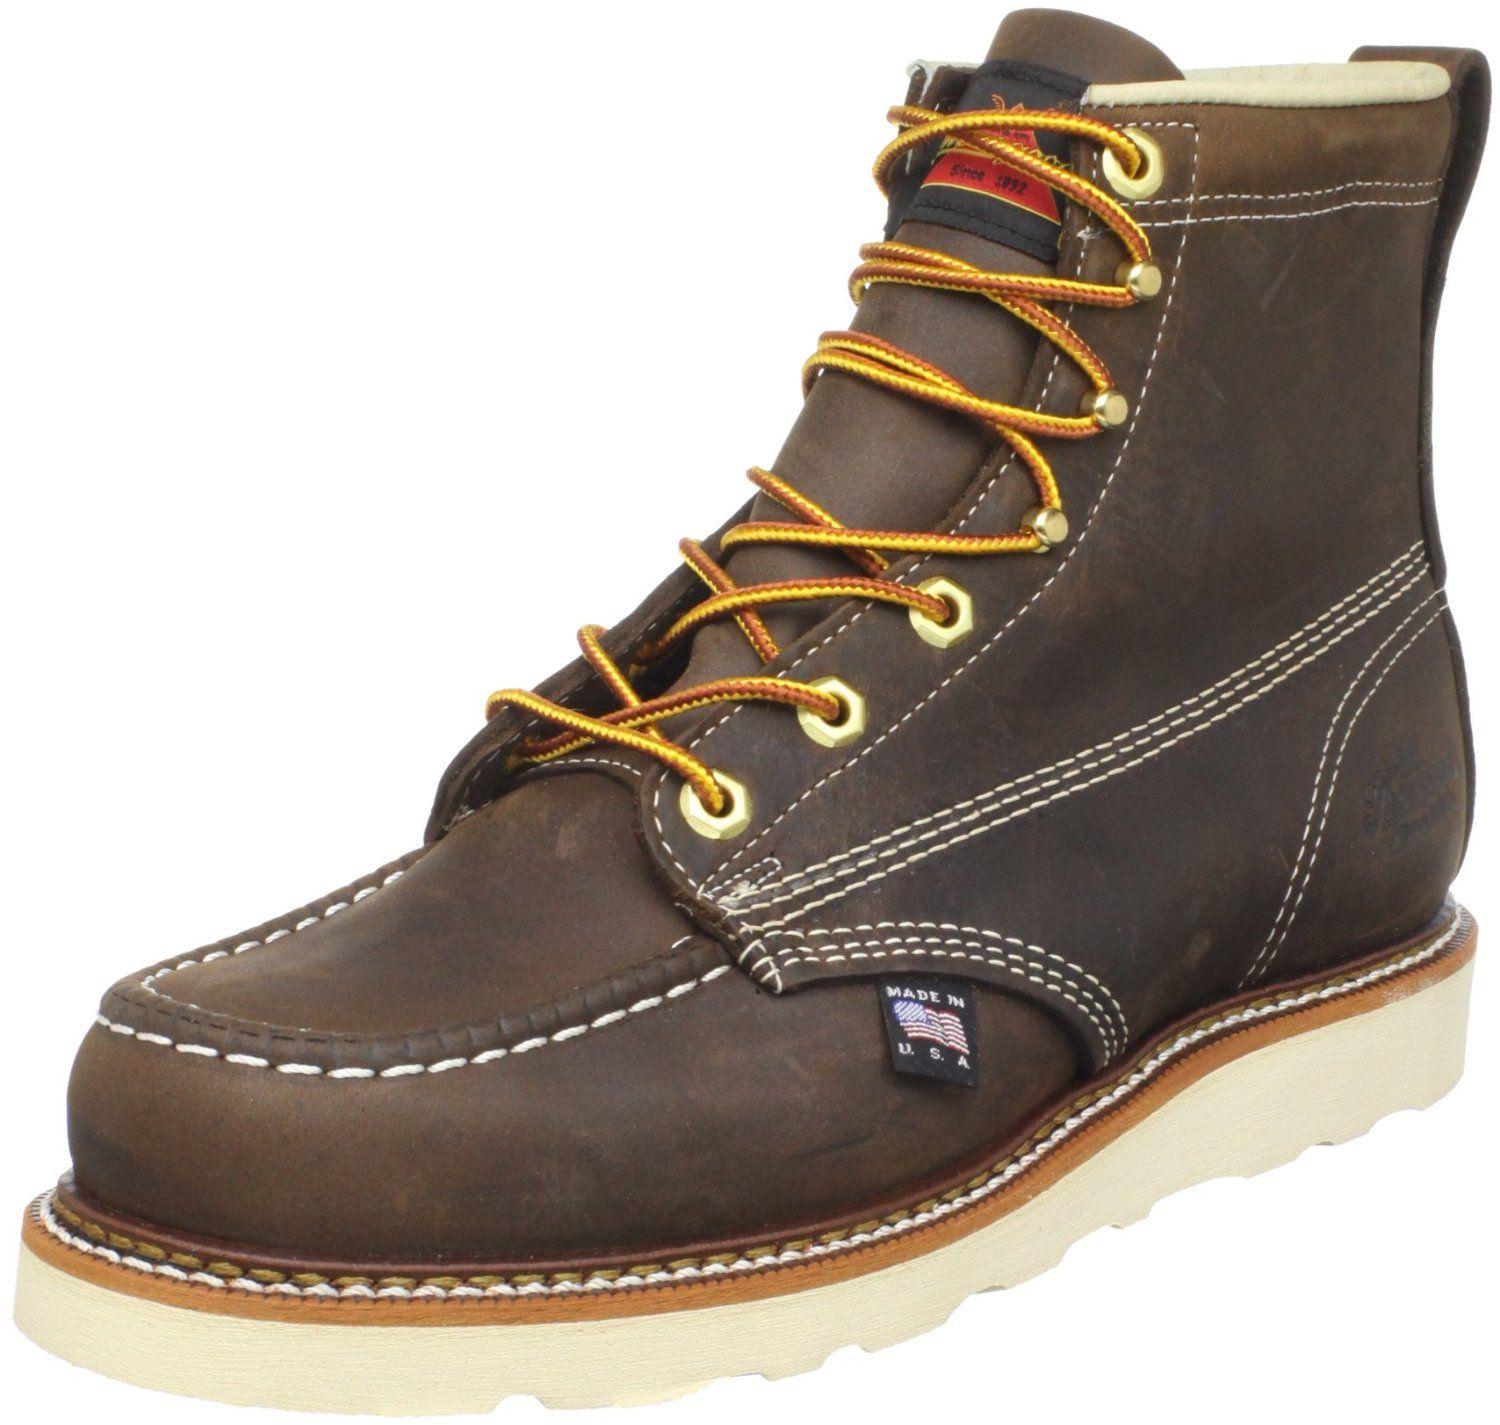 http://www.amazon.com/Thorogood-Mens-American-Heritage-Boot/dp/B004OWNNH2 Brown Crazy Horse Size 9(D)